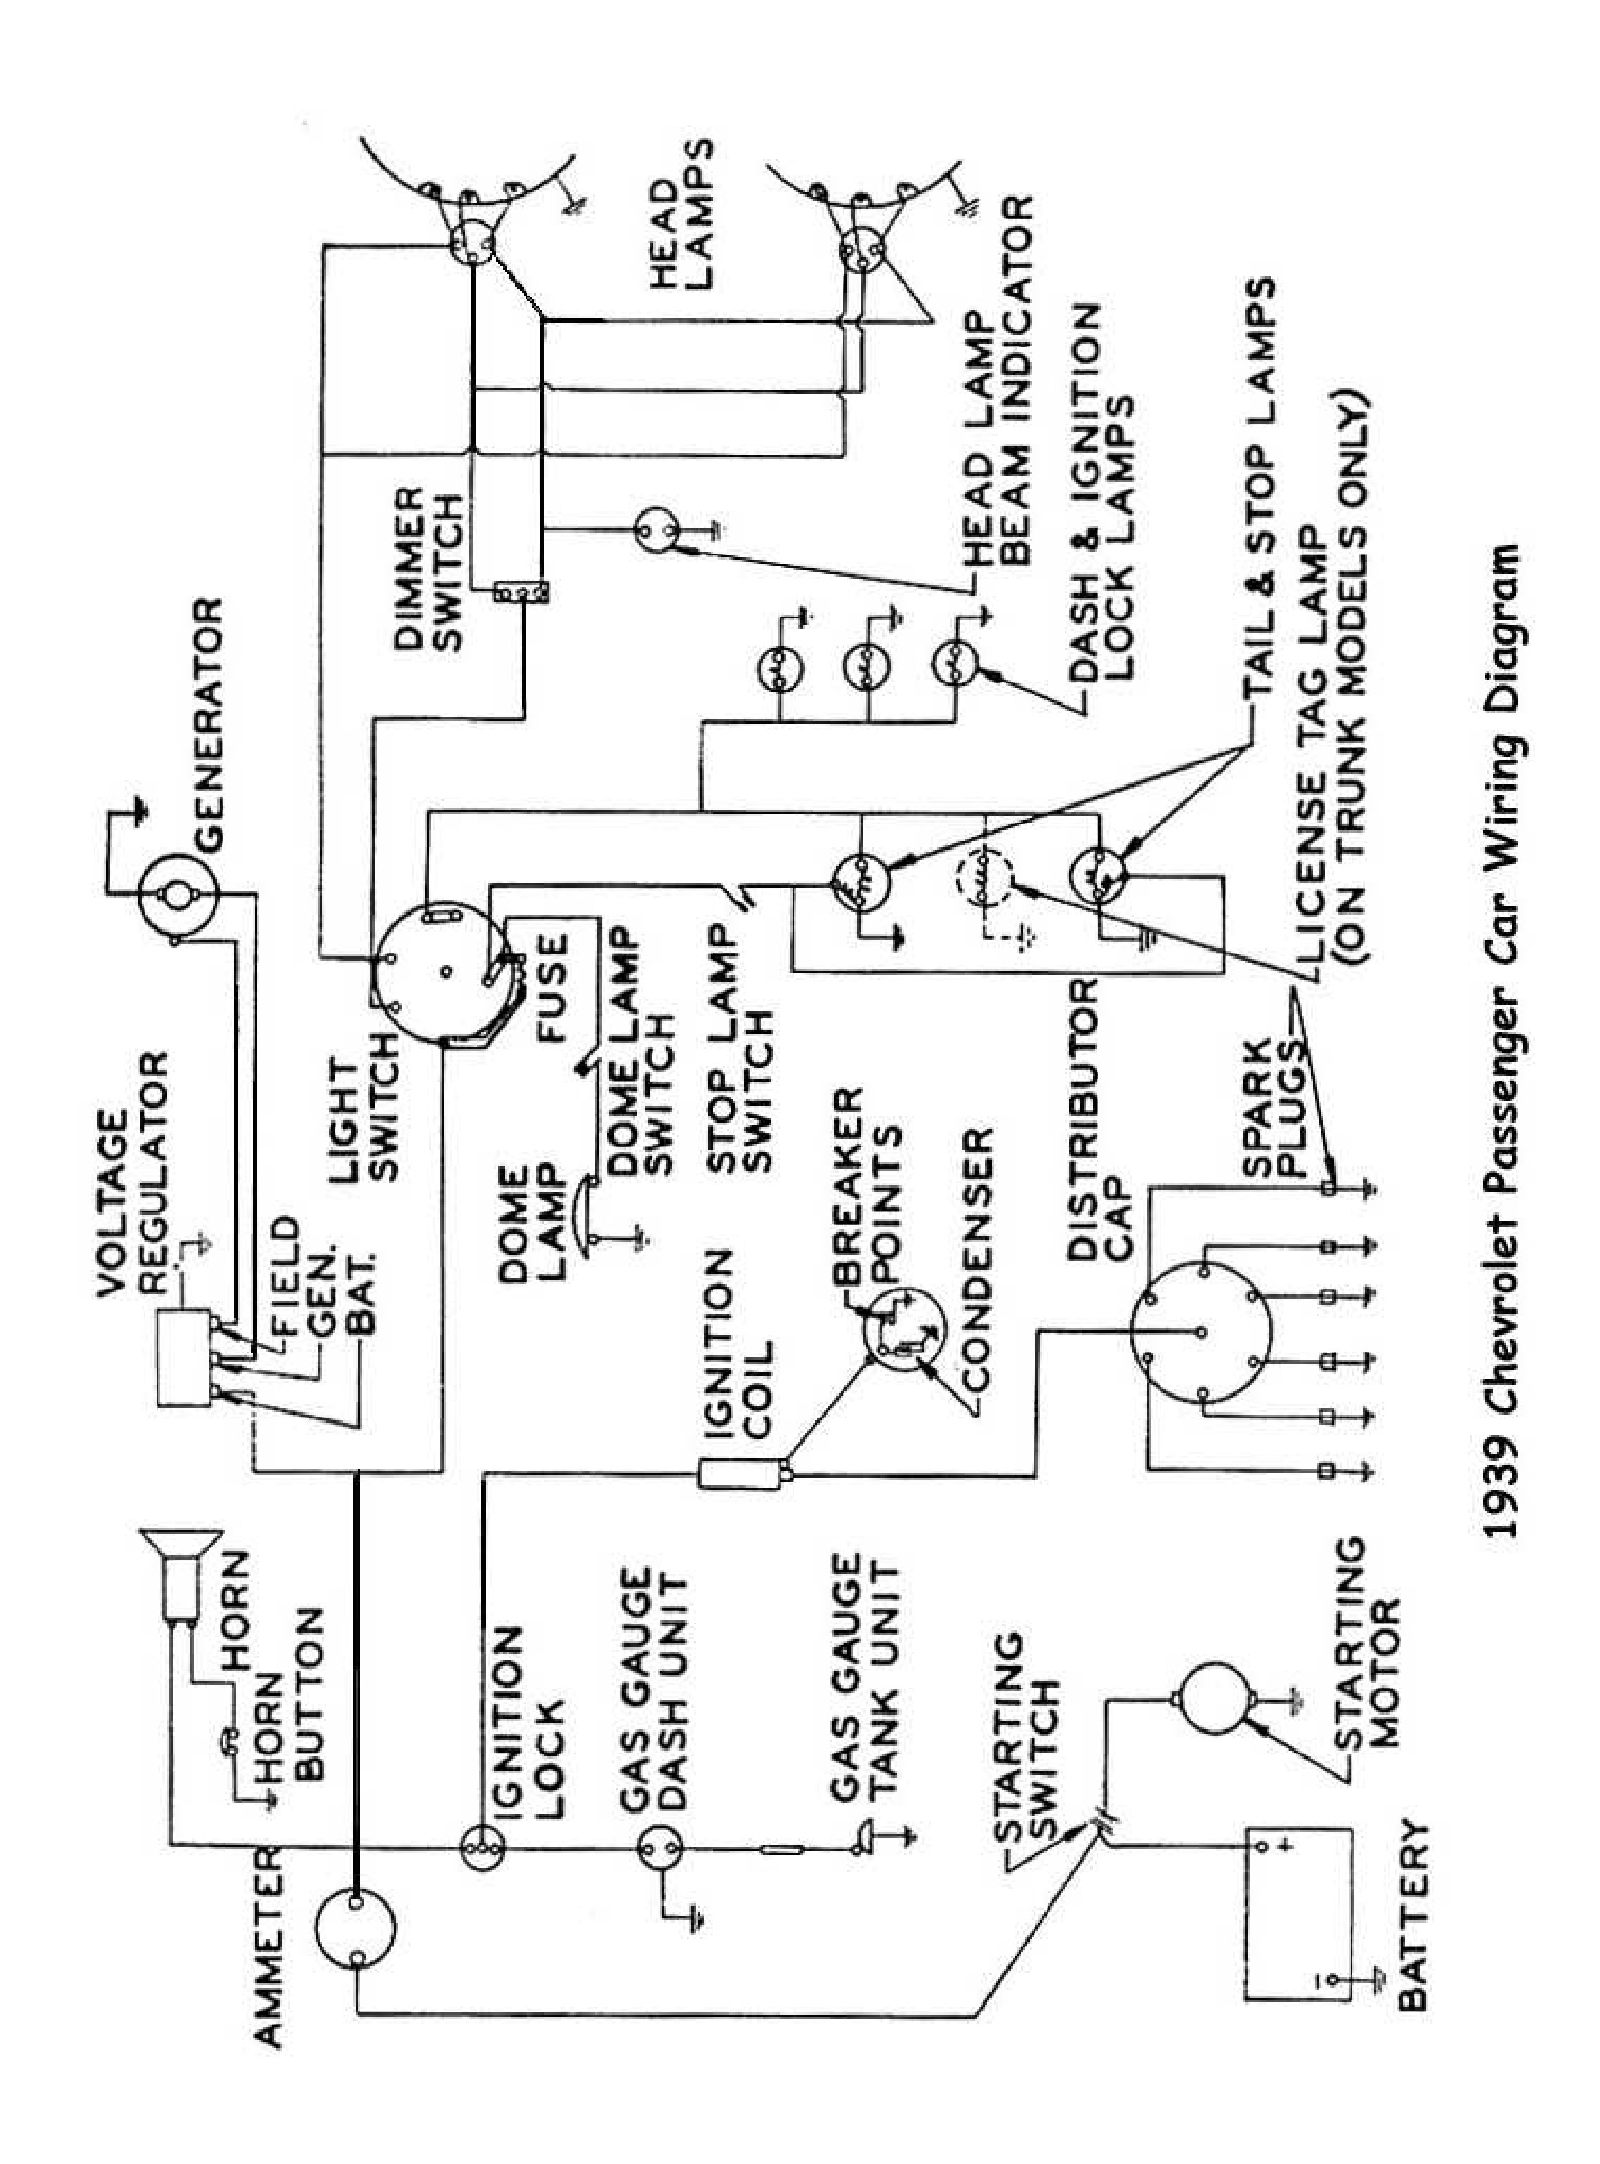 stop light switch wiring diagram best wiring library Light Fixture Wiring Diagram 1939 passenger car wiring chevy wiring diagrams